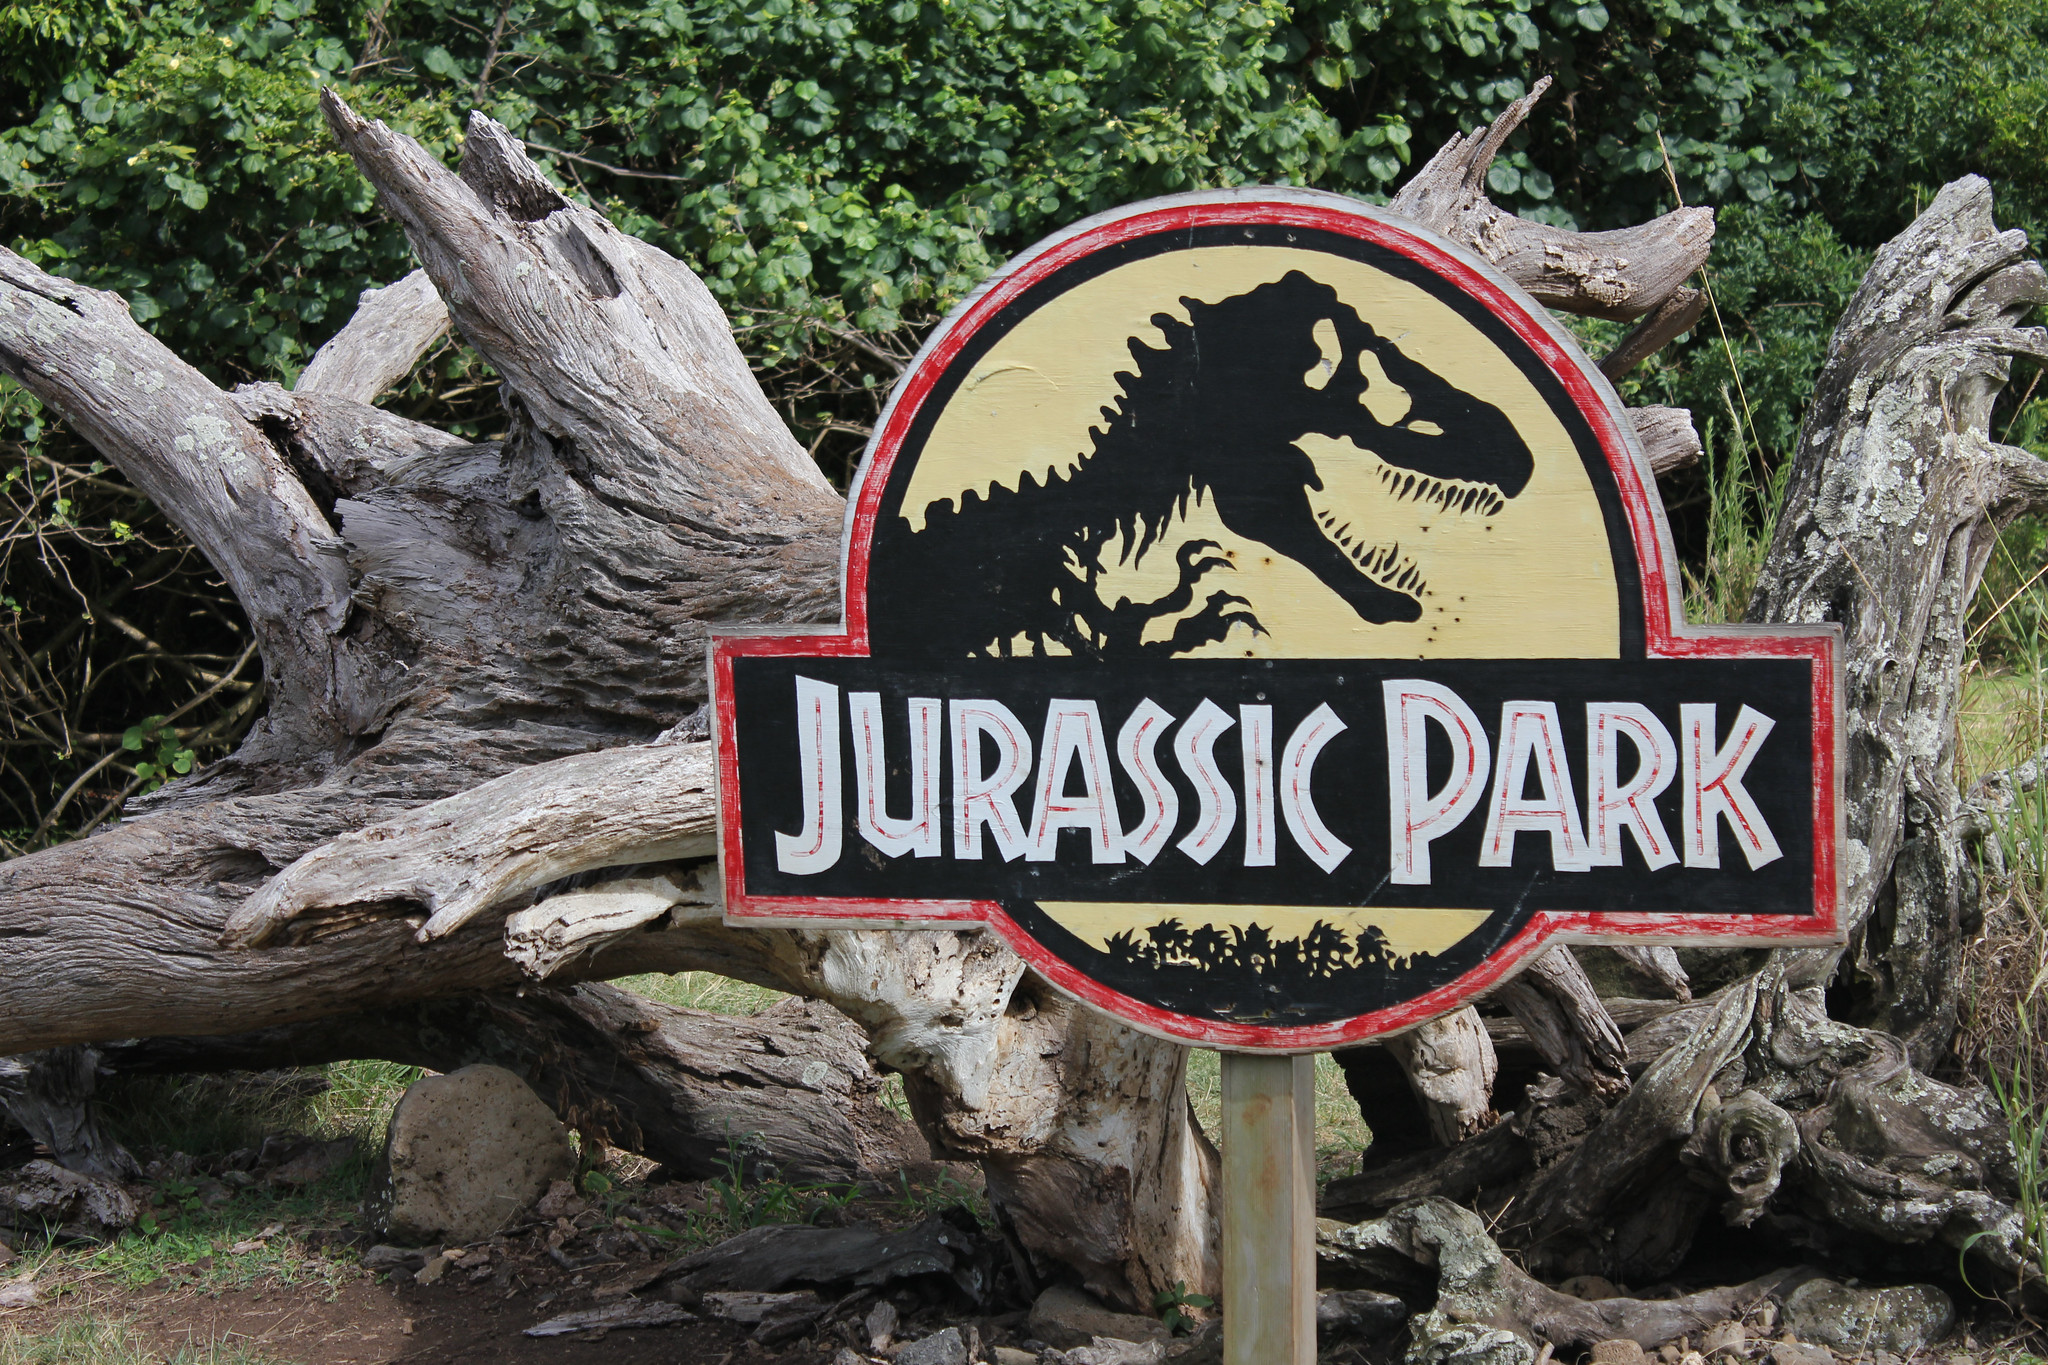 """When the book jacket design was licensed for the 1993 movie Jurassic Park, the drawing was unchanged, but some changes were made, which you can see in this photo from Hawaii's Kualoa Ranch movie tour. The film designers added some silhouettes of trees, some color, and a circle border to form a round logo; meanwhile, designer Mike Salisbury chose the font Neuland for the words """"Jurassic Park."""" Photo: Will Fisher / Flickr CC BY-SA 2.0"""